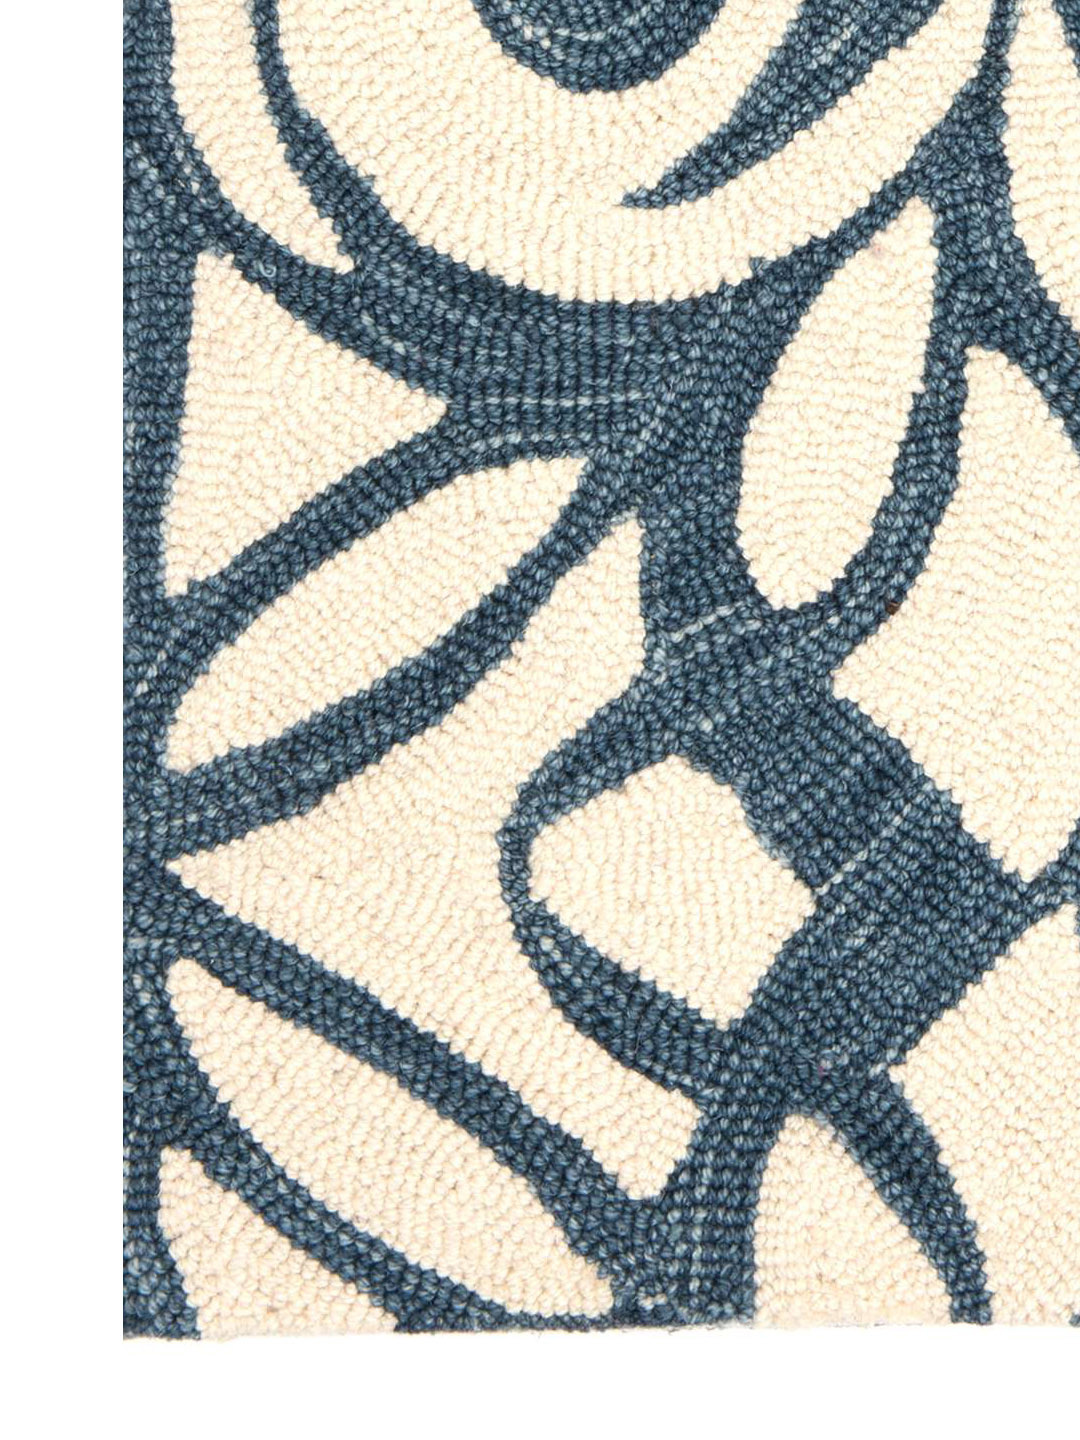 Chandelier Ink Wool Micro Hooked Rug-3